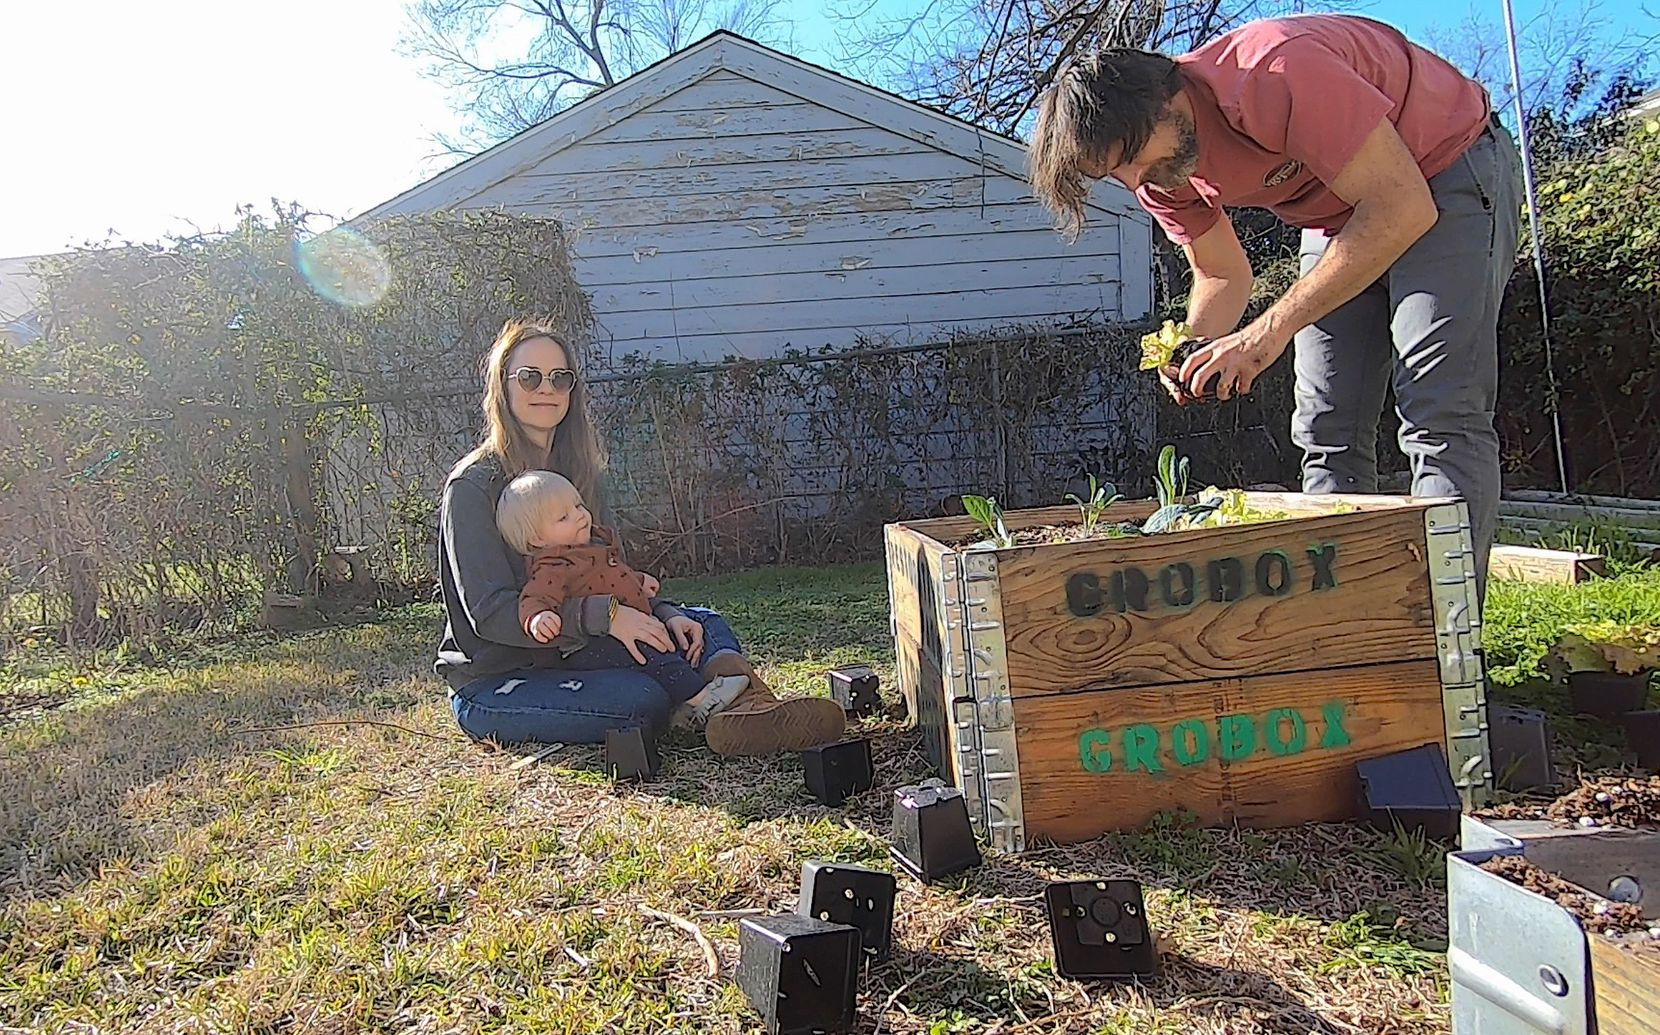 Rick Baraff and Courtney Miles Baraff plant GroBox gardens with their our 17-month old twins, Clyde and Edie